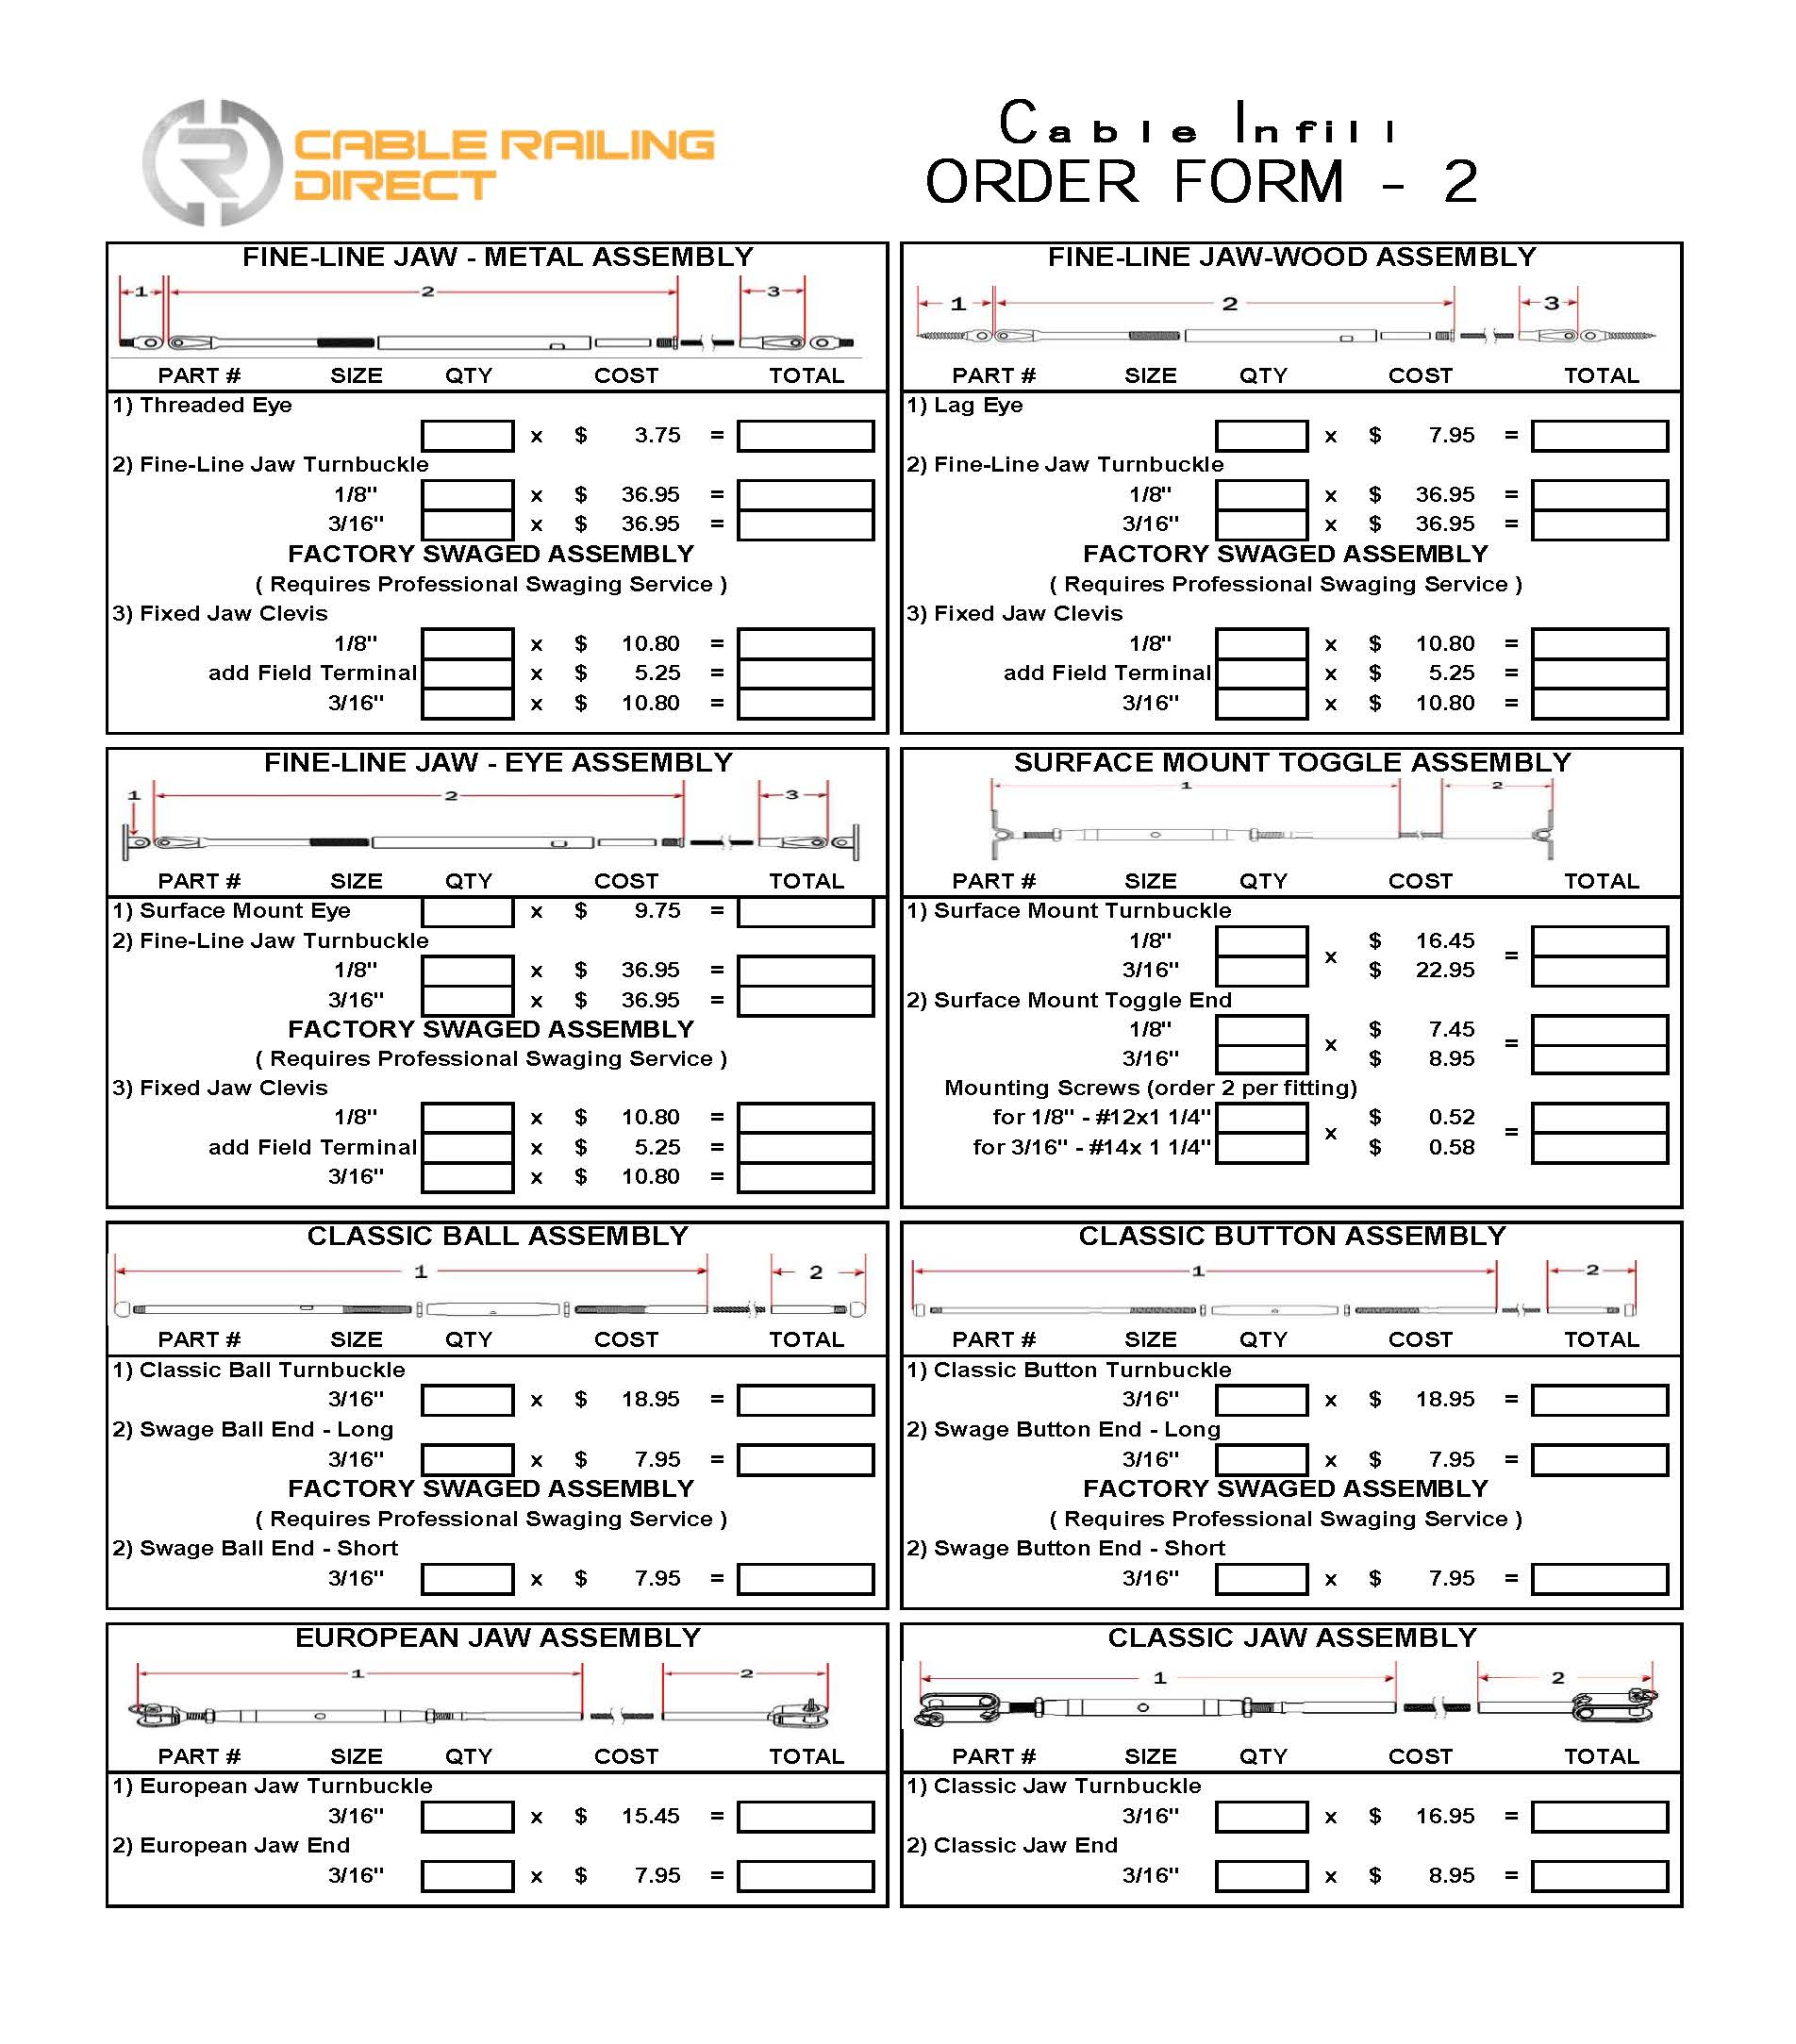 CRD Infill Order Forms Page 2